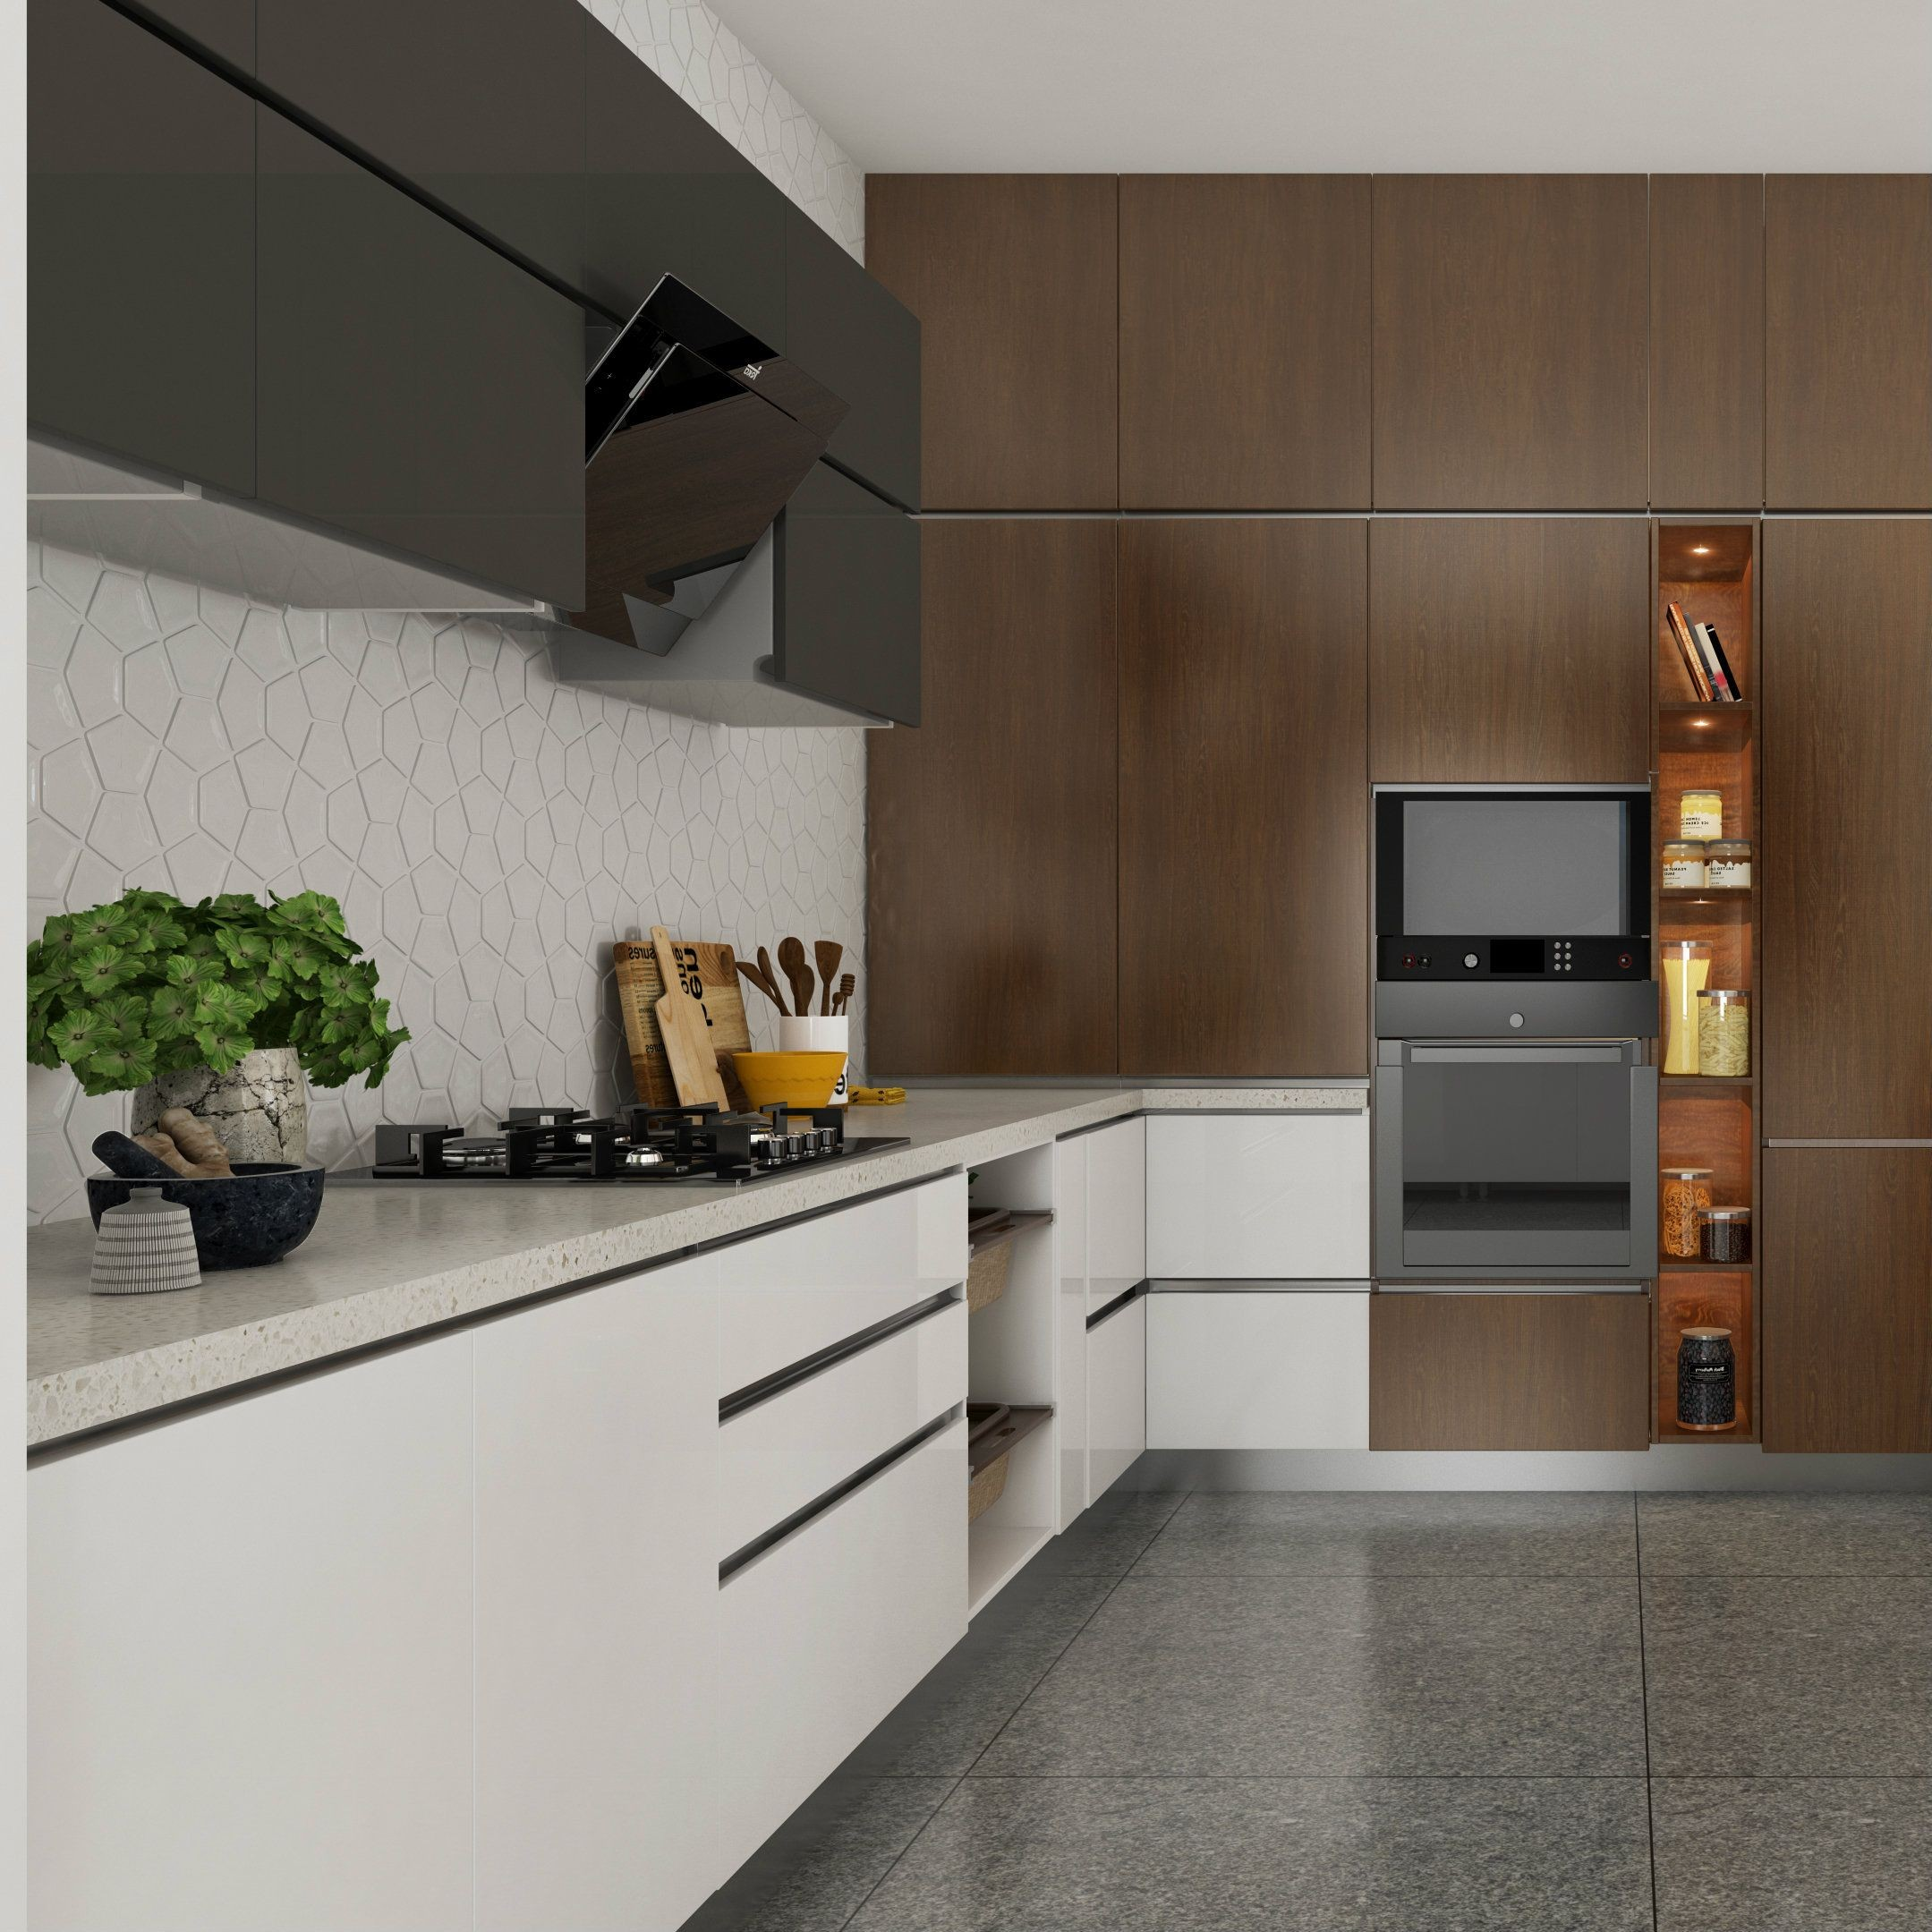 Black and white modular kitchen with a wooden accent wall for built in appliances the back splash features a cracked tile look Black white wood= luxury